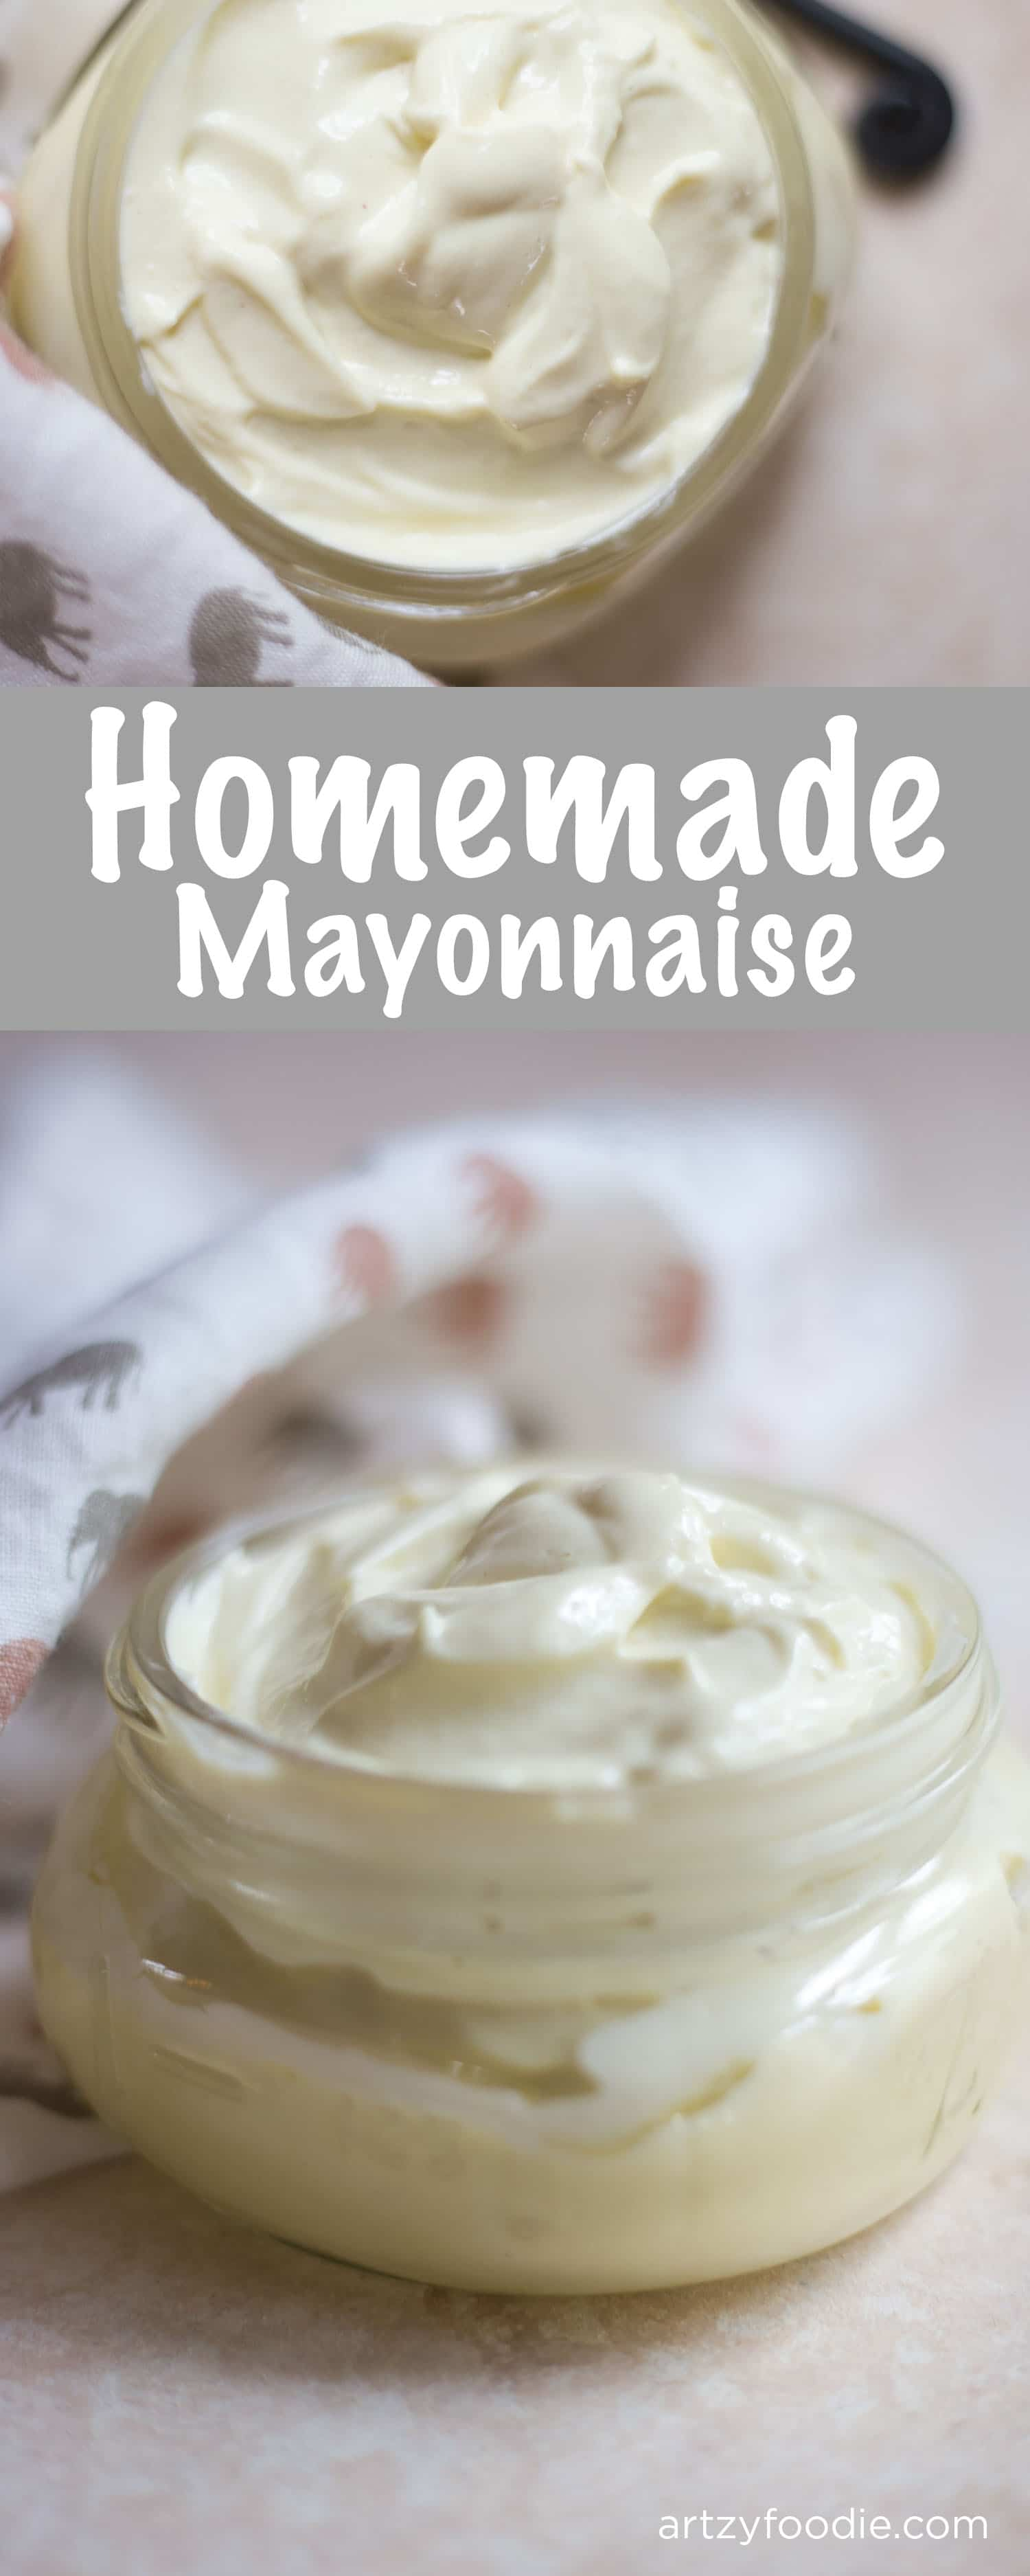 Homemade mayonnaise is surprisingly simple and oh so tasty! |artzyfoodie.com|